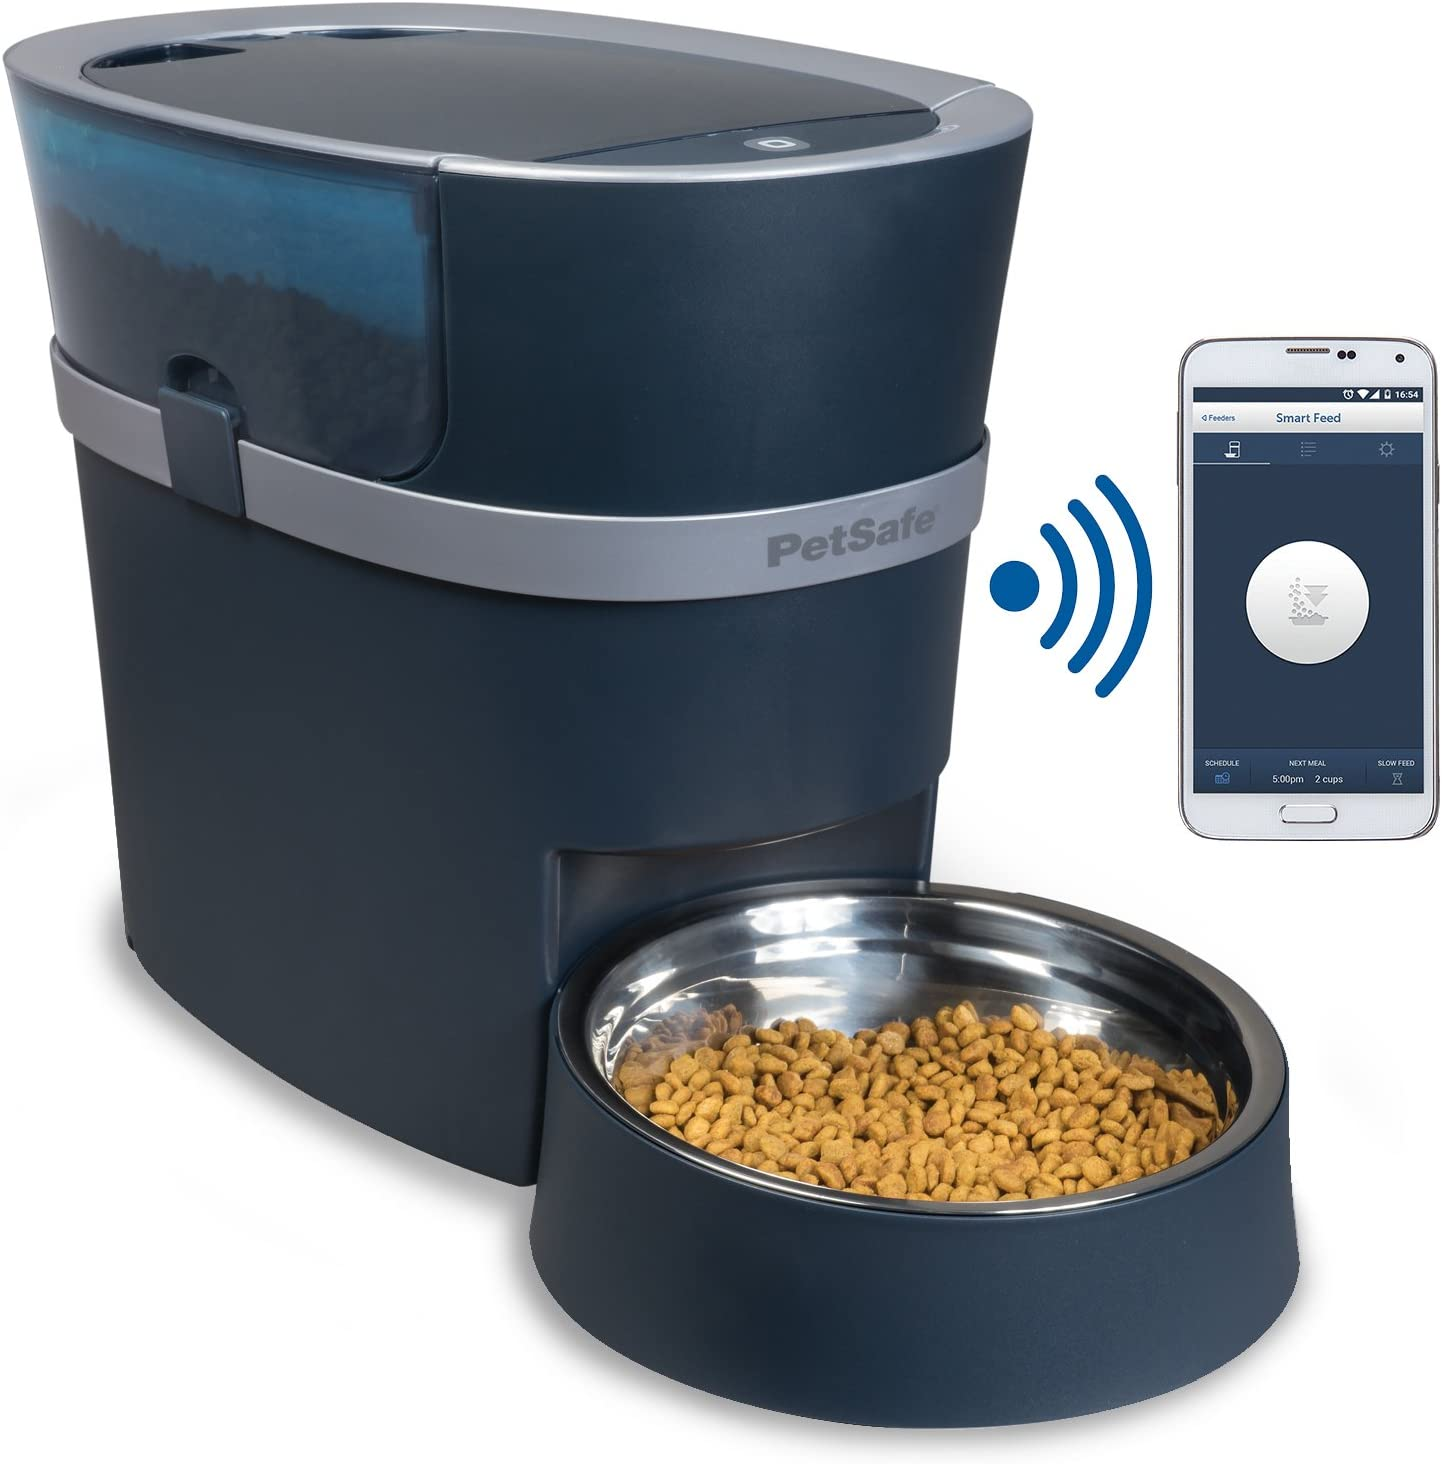 Top 3 Smart Pet Feeders | Automatic Dog & Cat Feeders 3